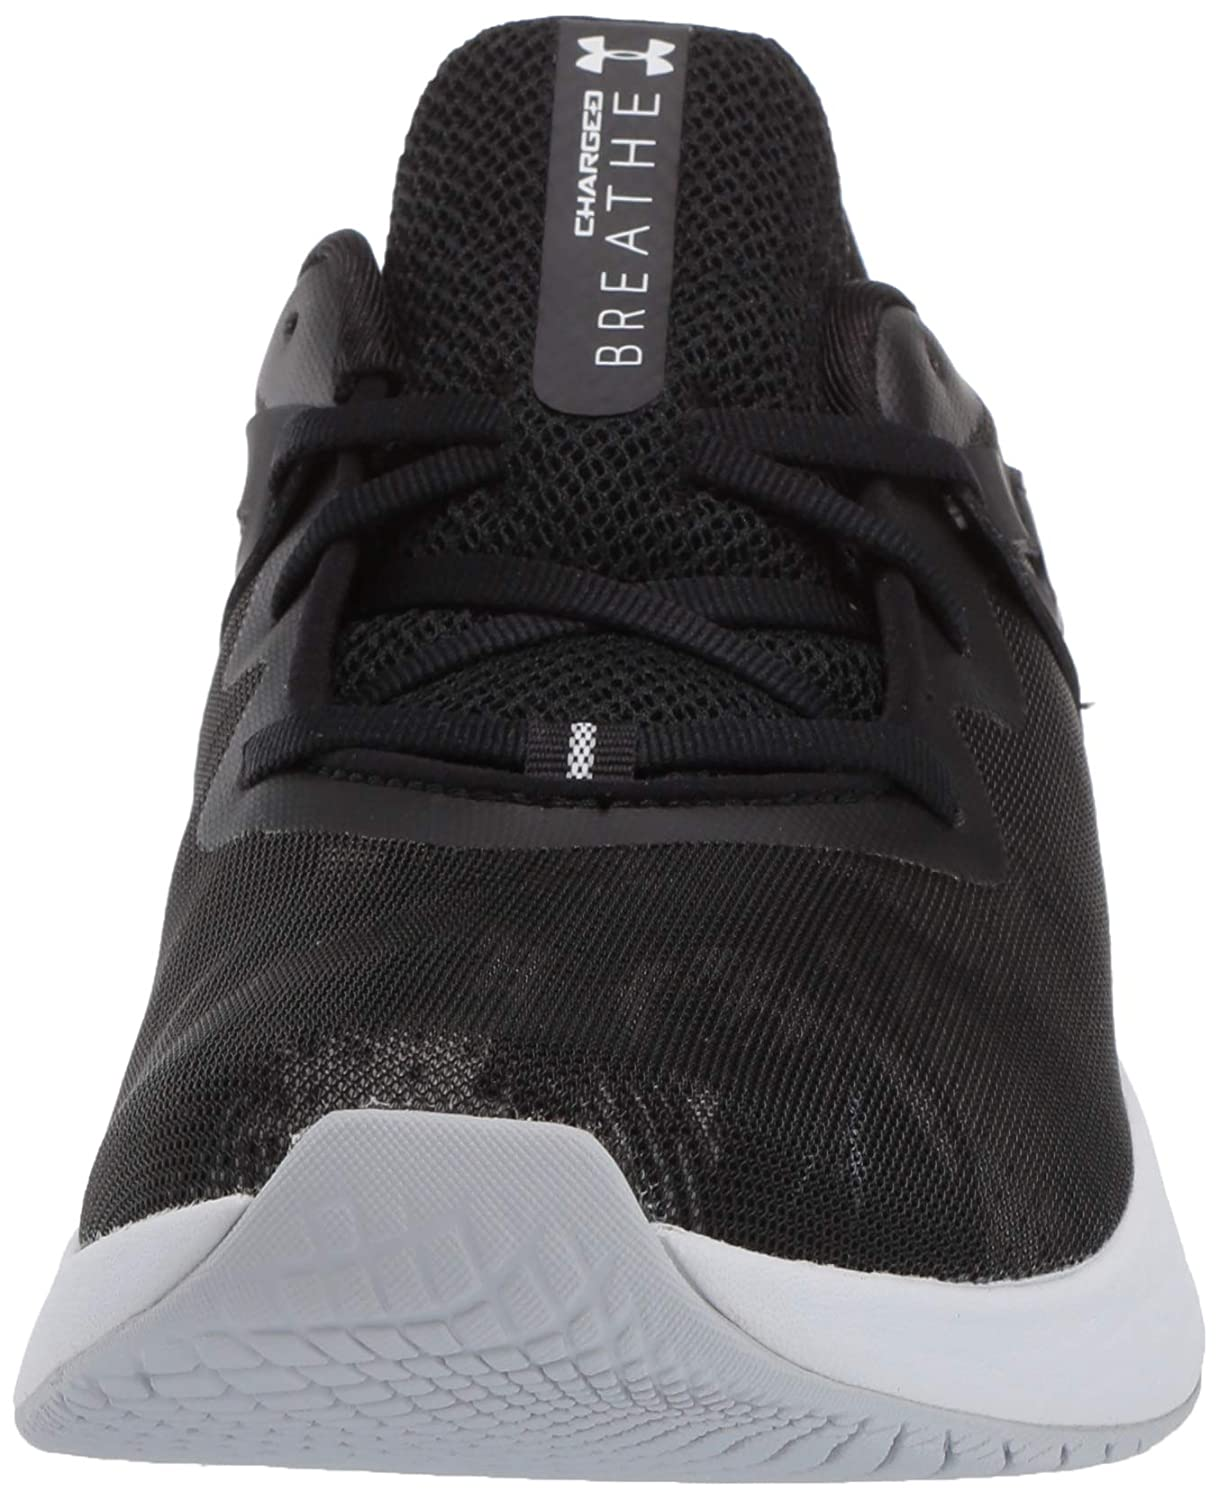 Cross Trainer Under Armour Womens Charged Breathe Tr 2.0